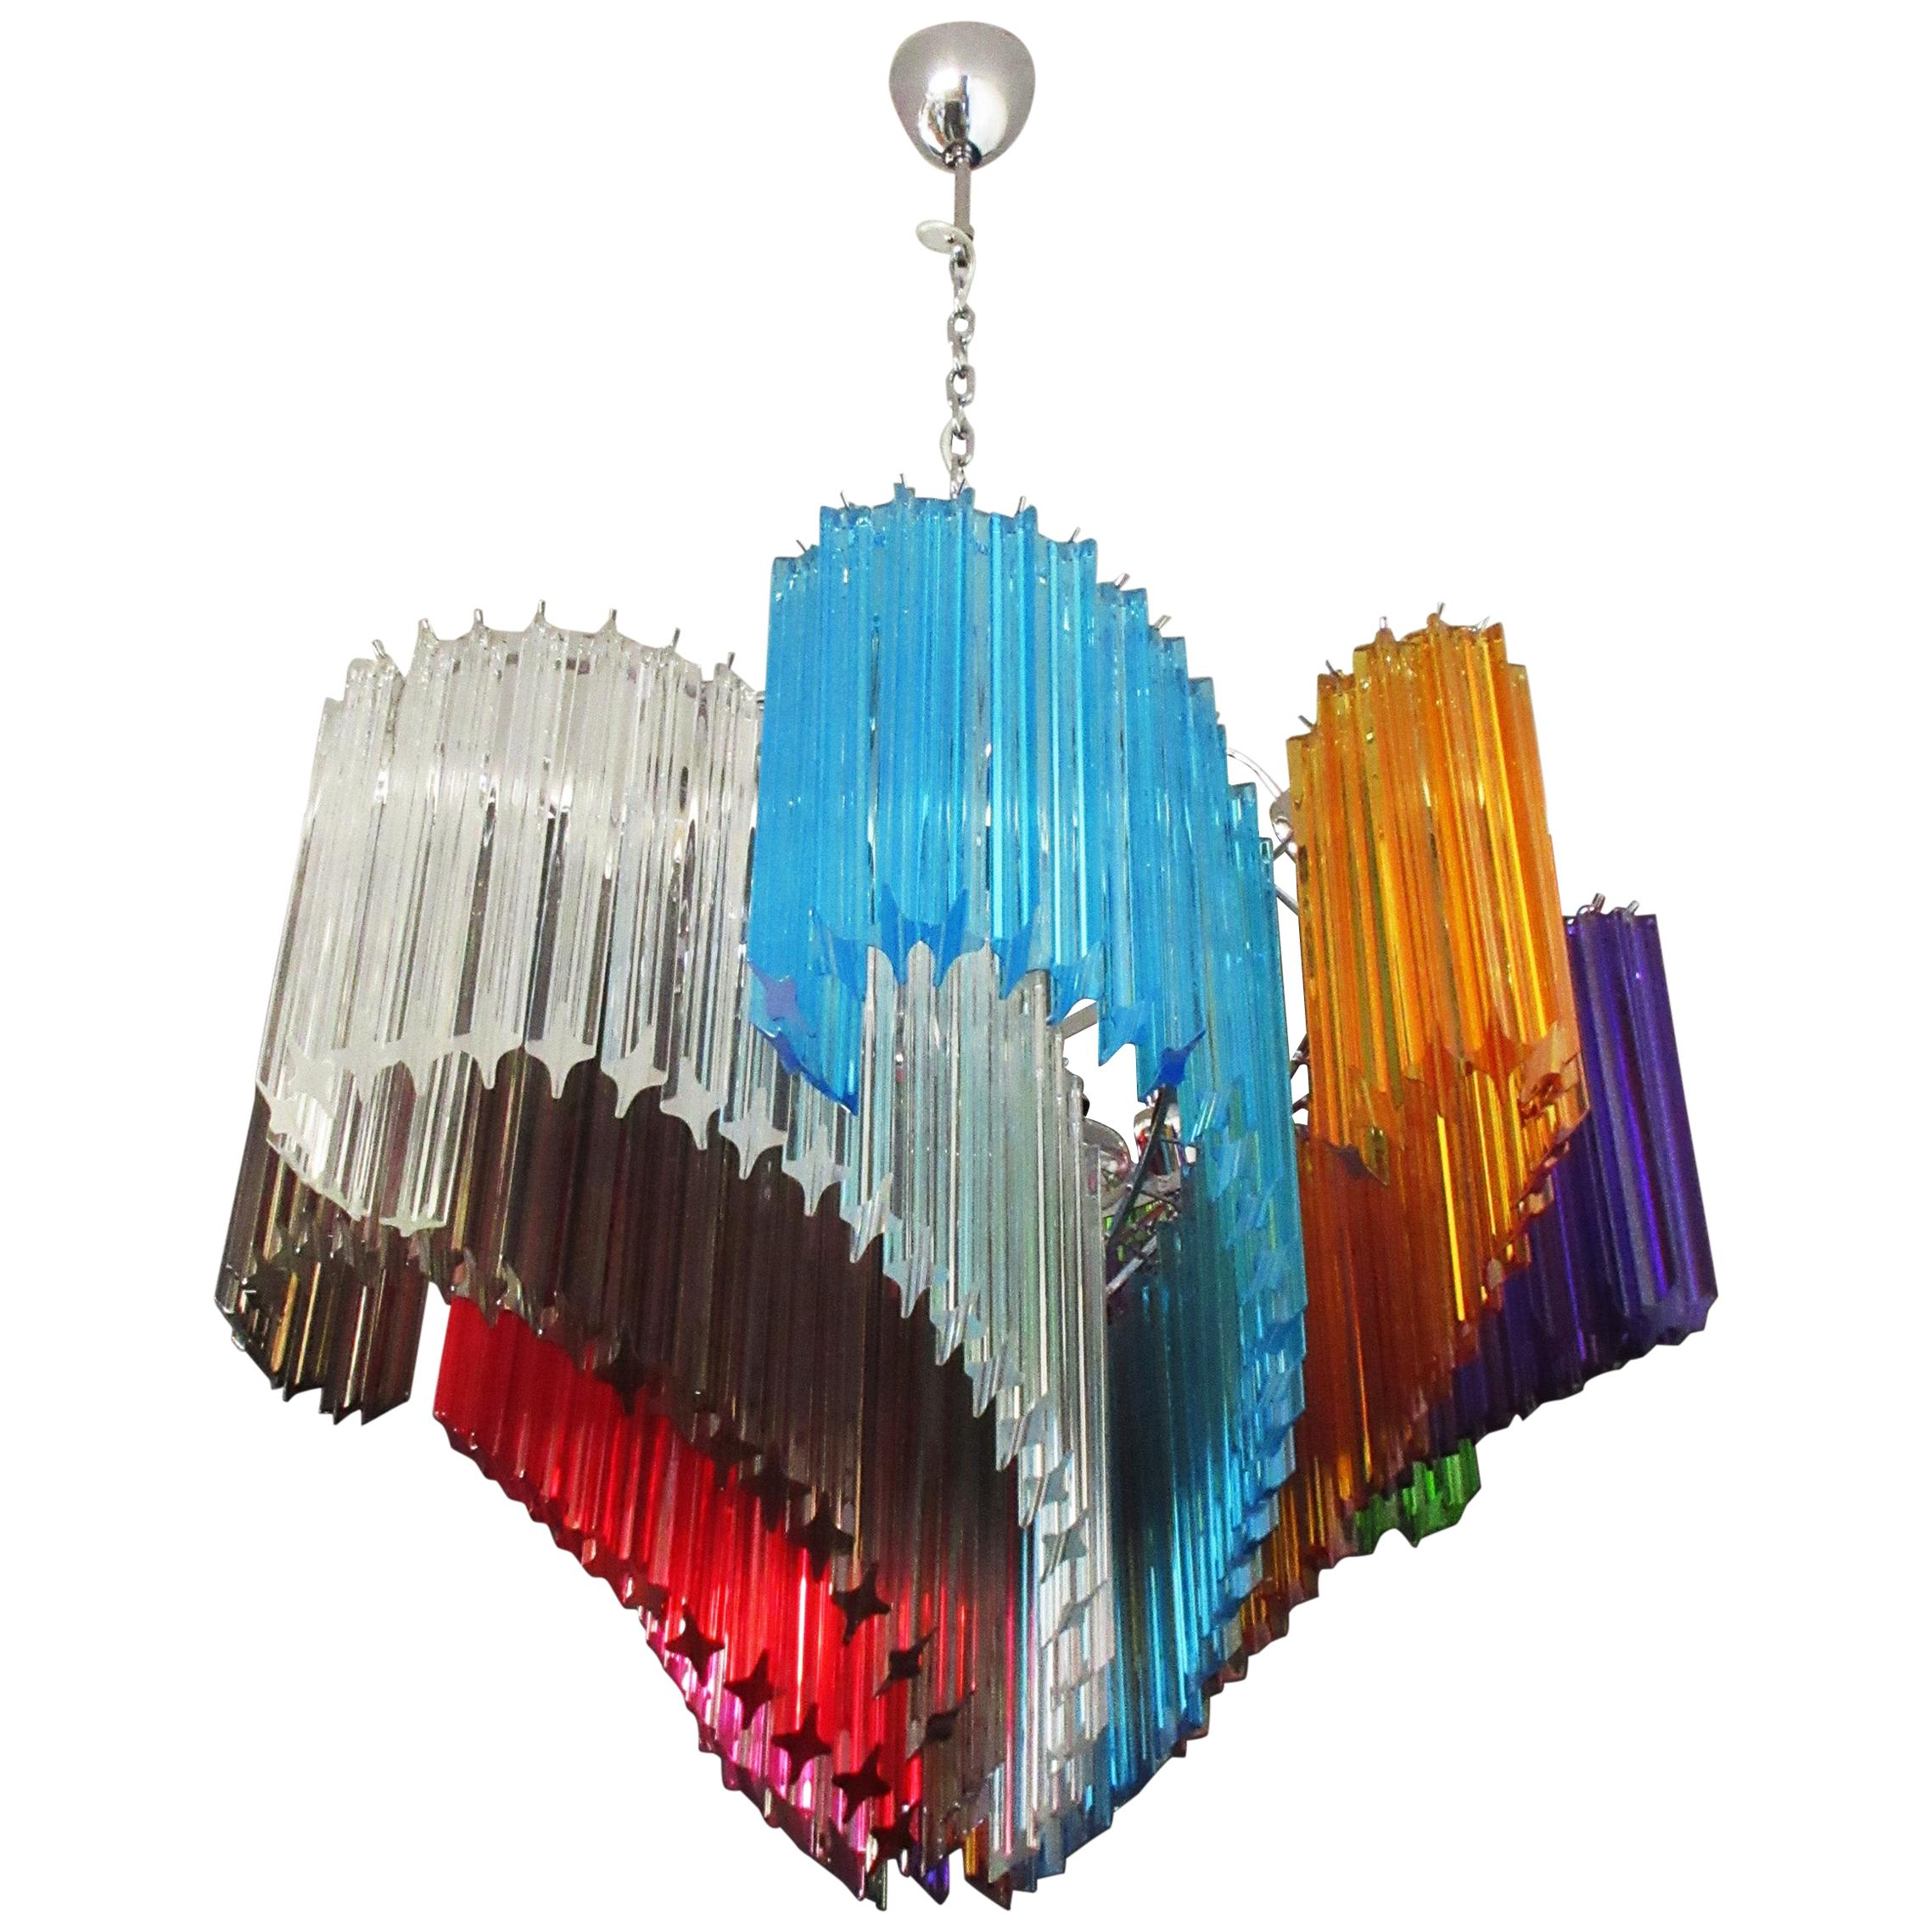 Modern Quadriedri Murano Glass Chandelier, 200 Multicolored Prism Quadriedri